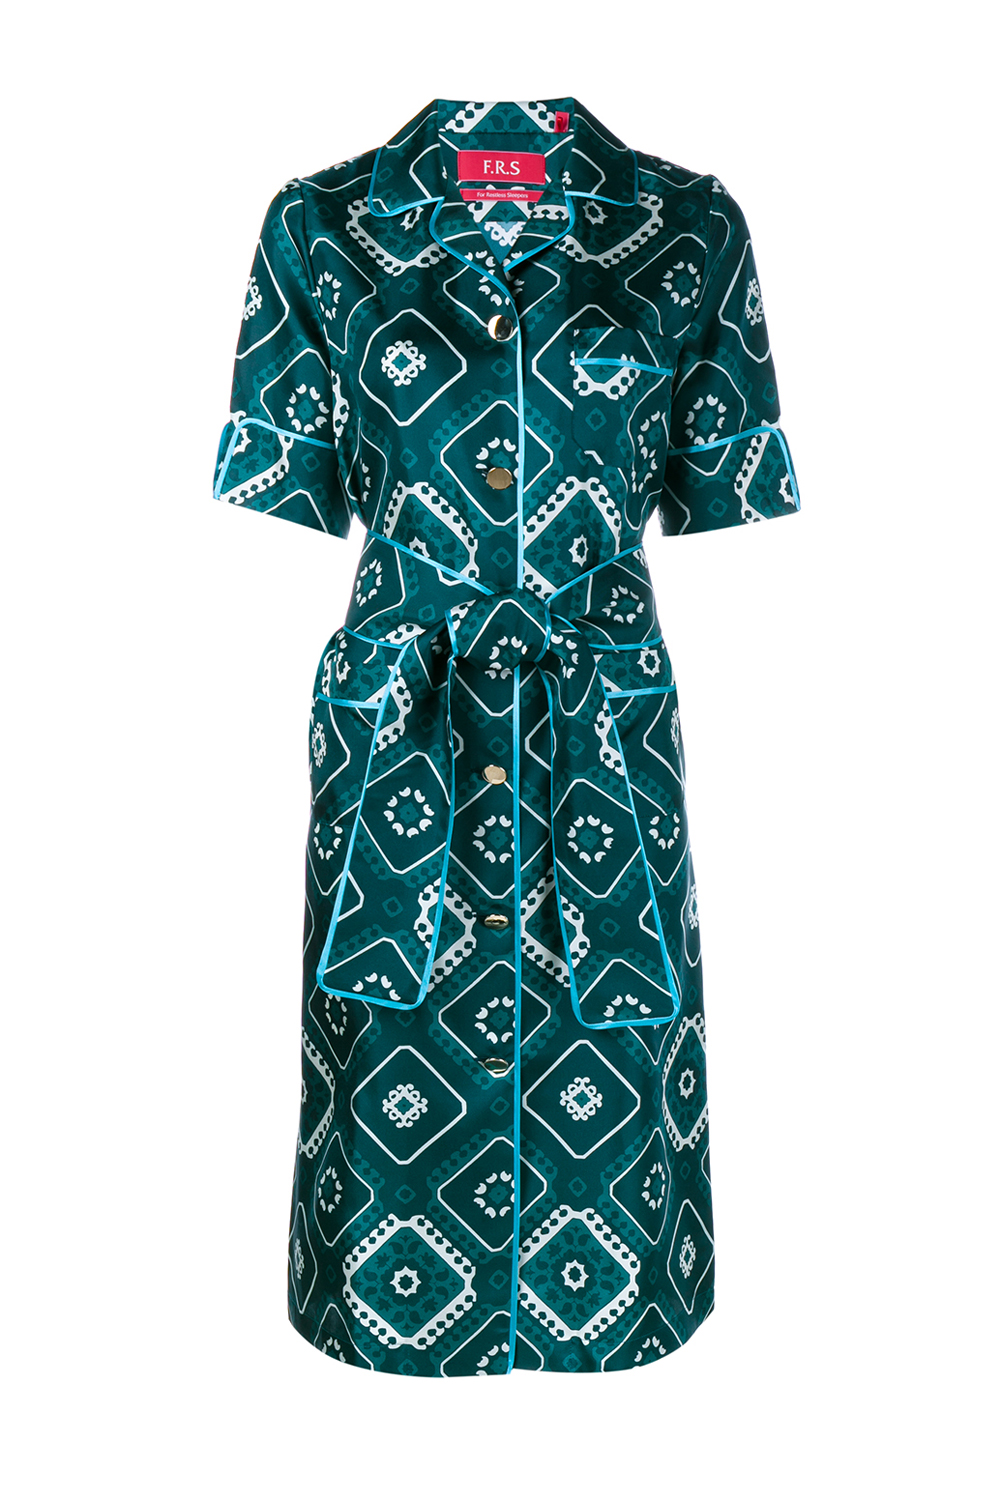 Spring Dresses: The Marie Claire Edit